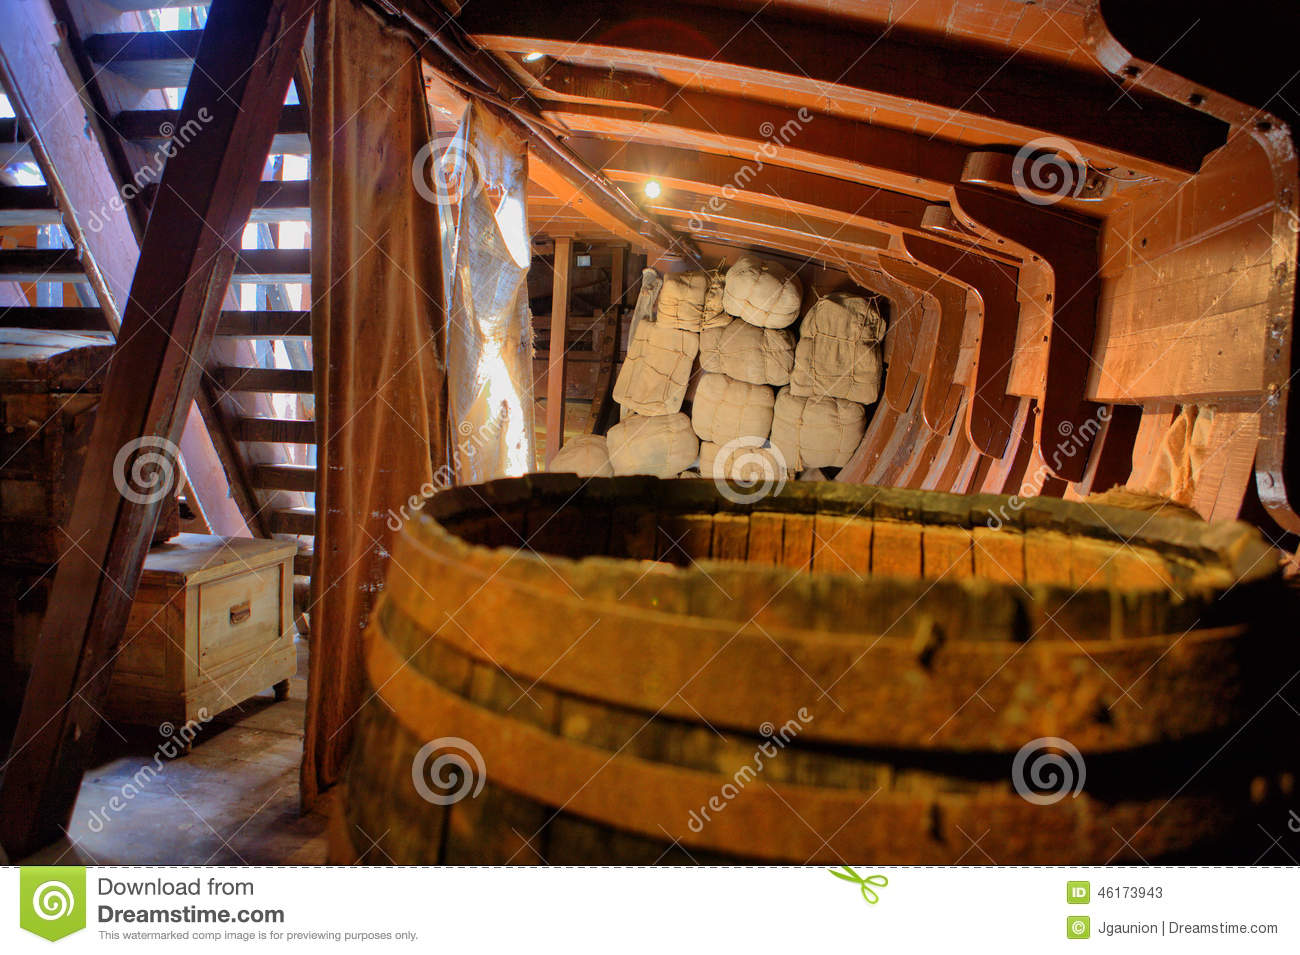 Caravel life inside stock image. Image of wood, discovery - 46173943